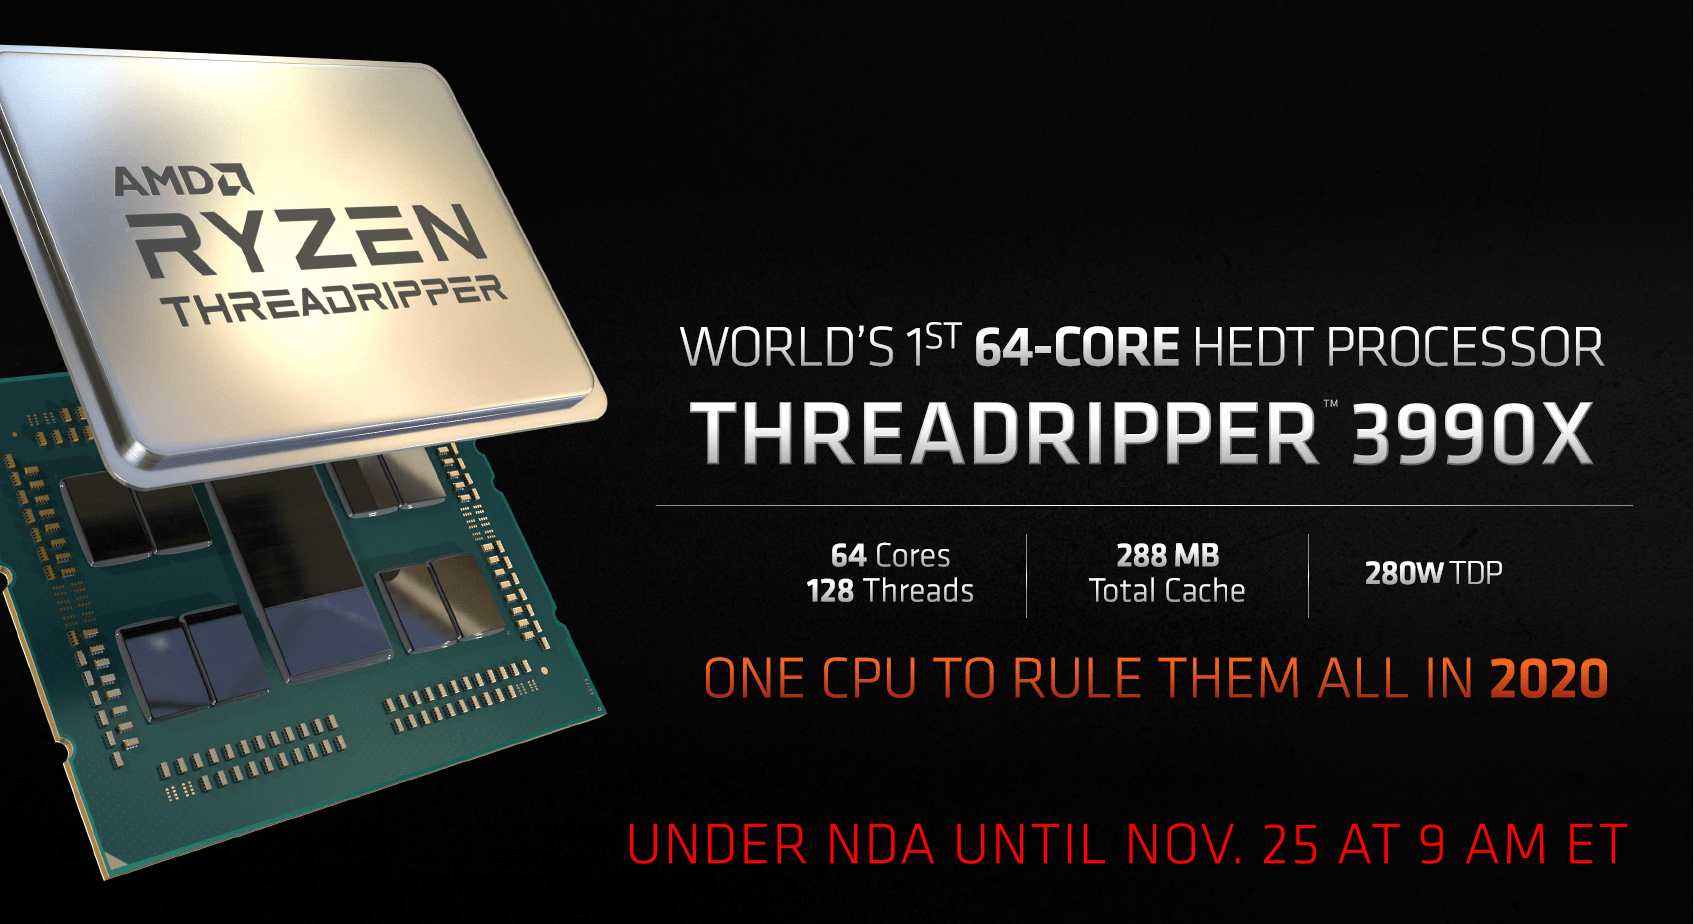 AMD Ryzen Threadripper 3990X mit 64 Kernen